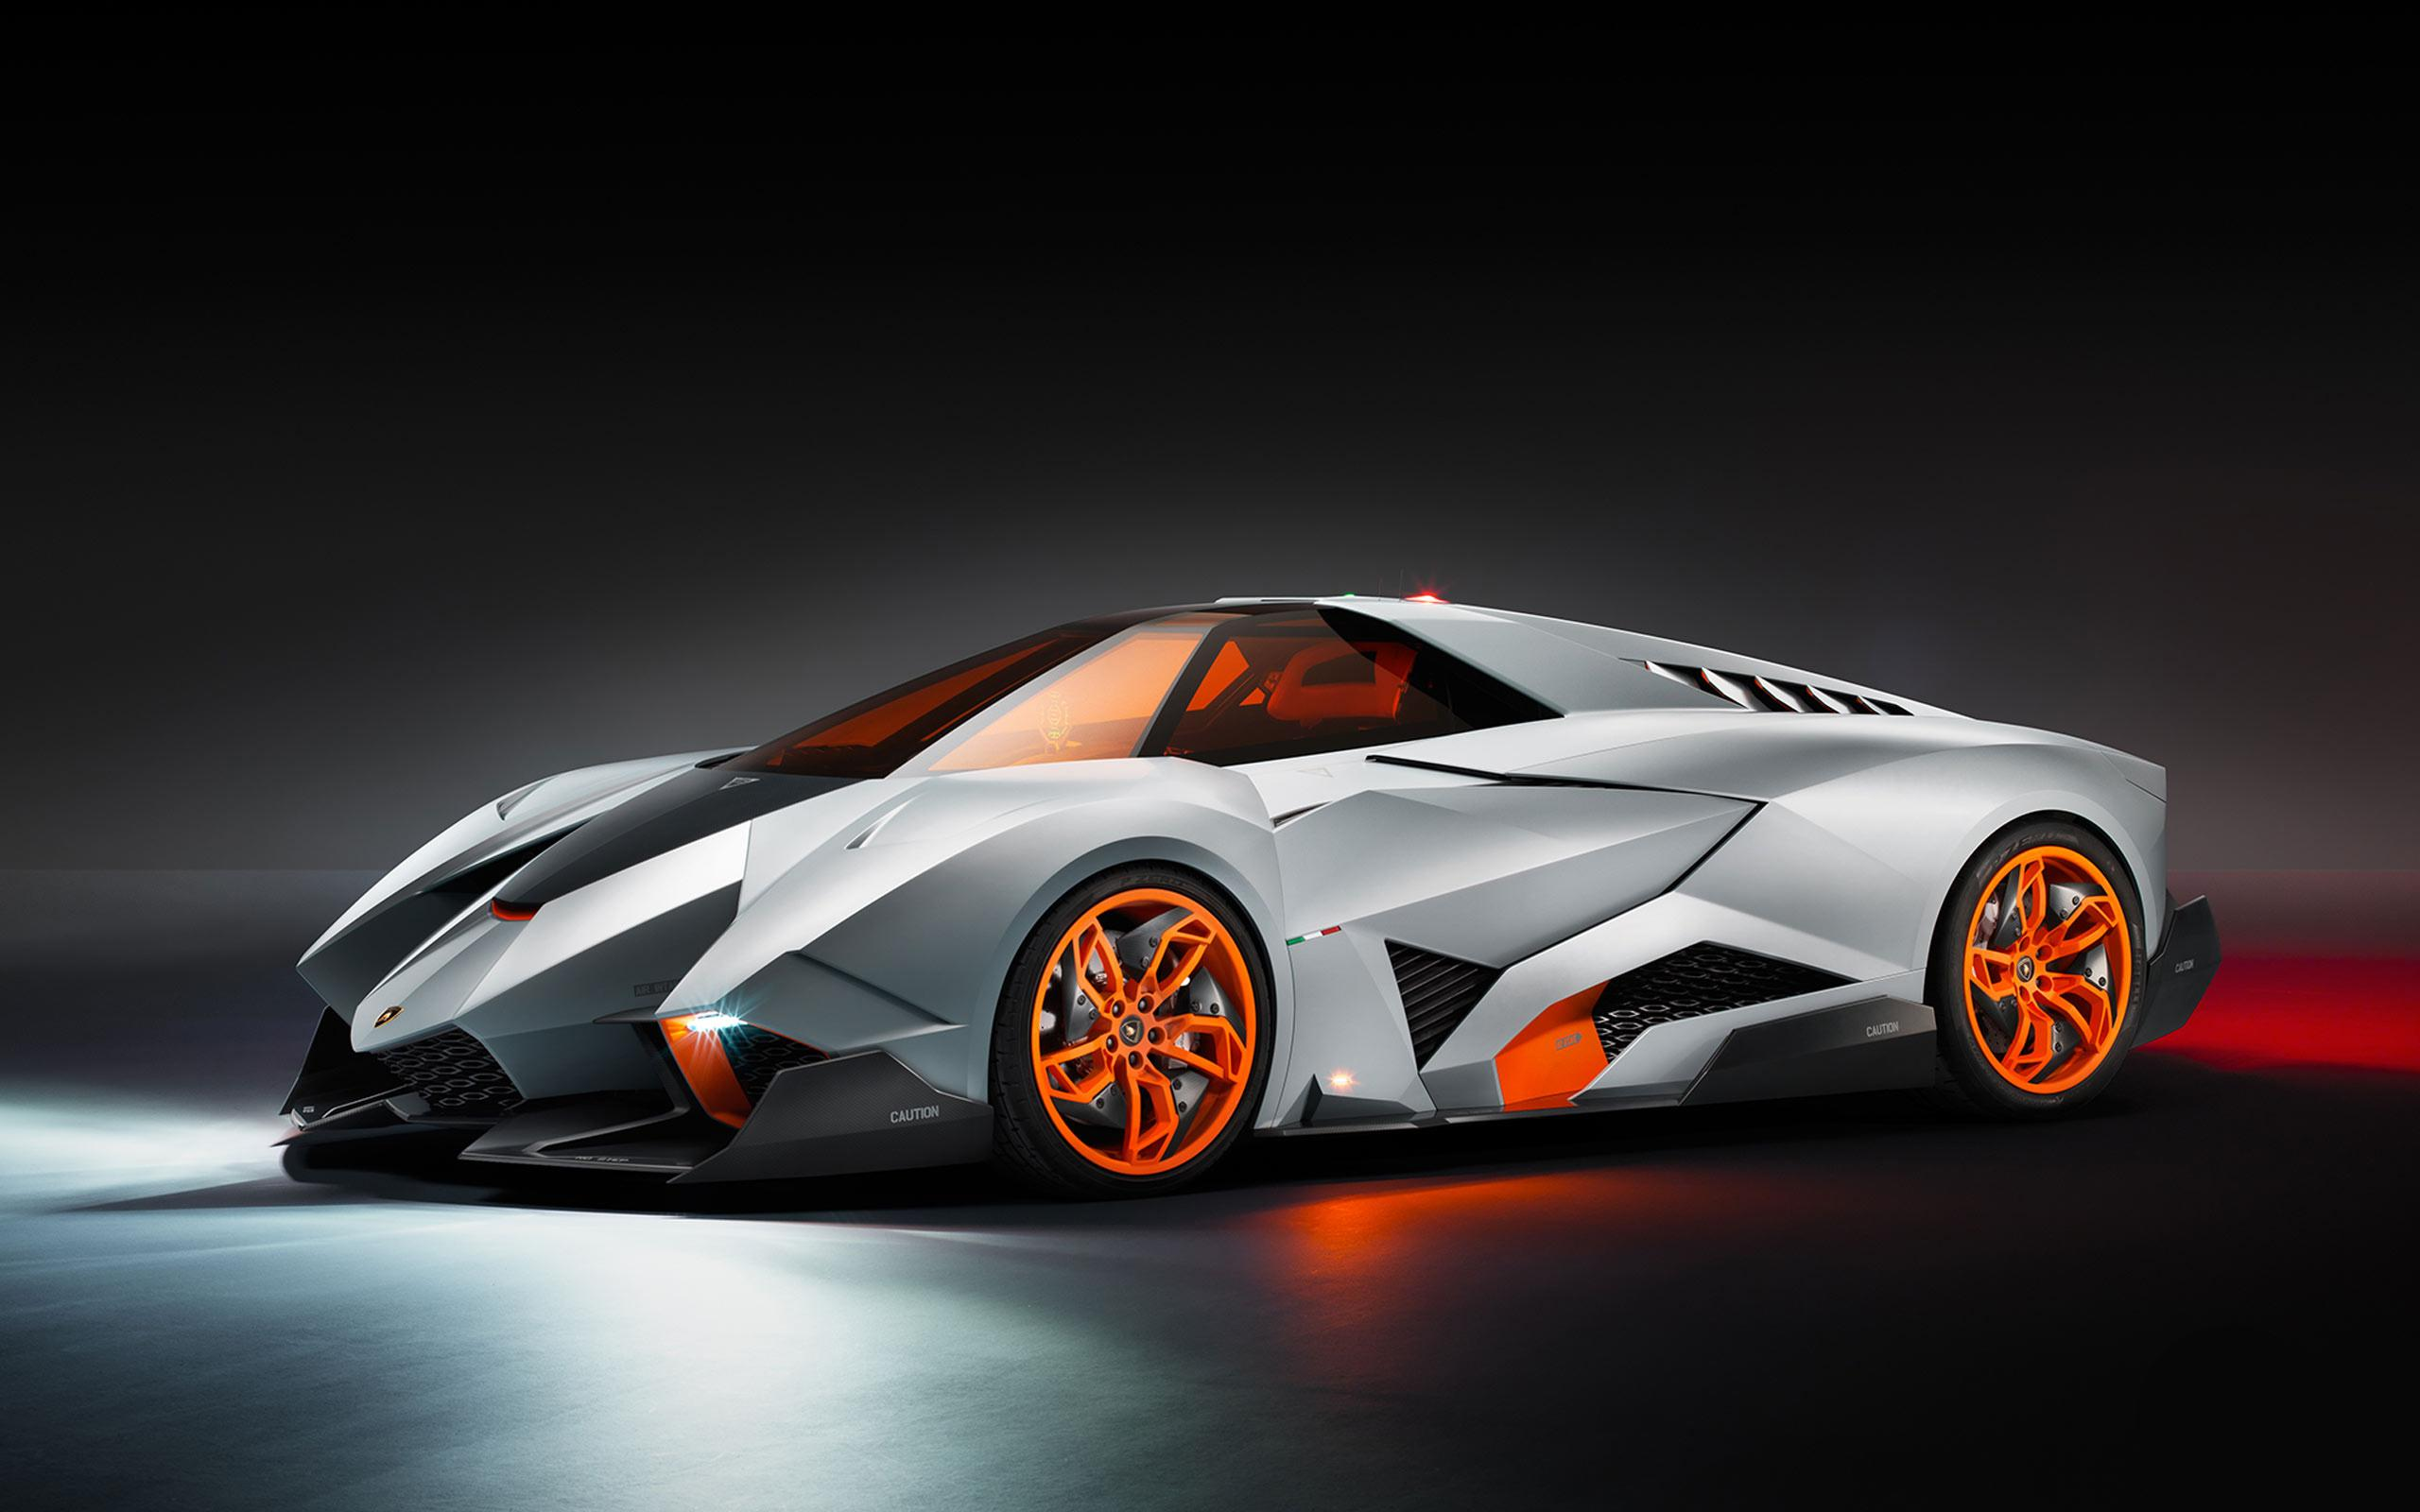 cool cars wallpapers 3d walljpegcom 2560x1600